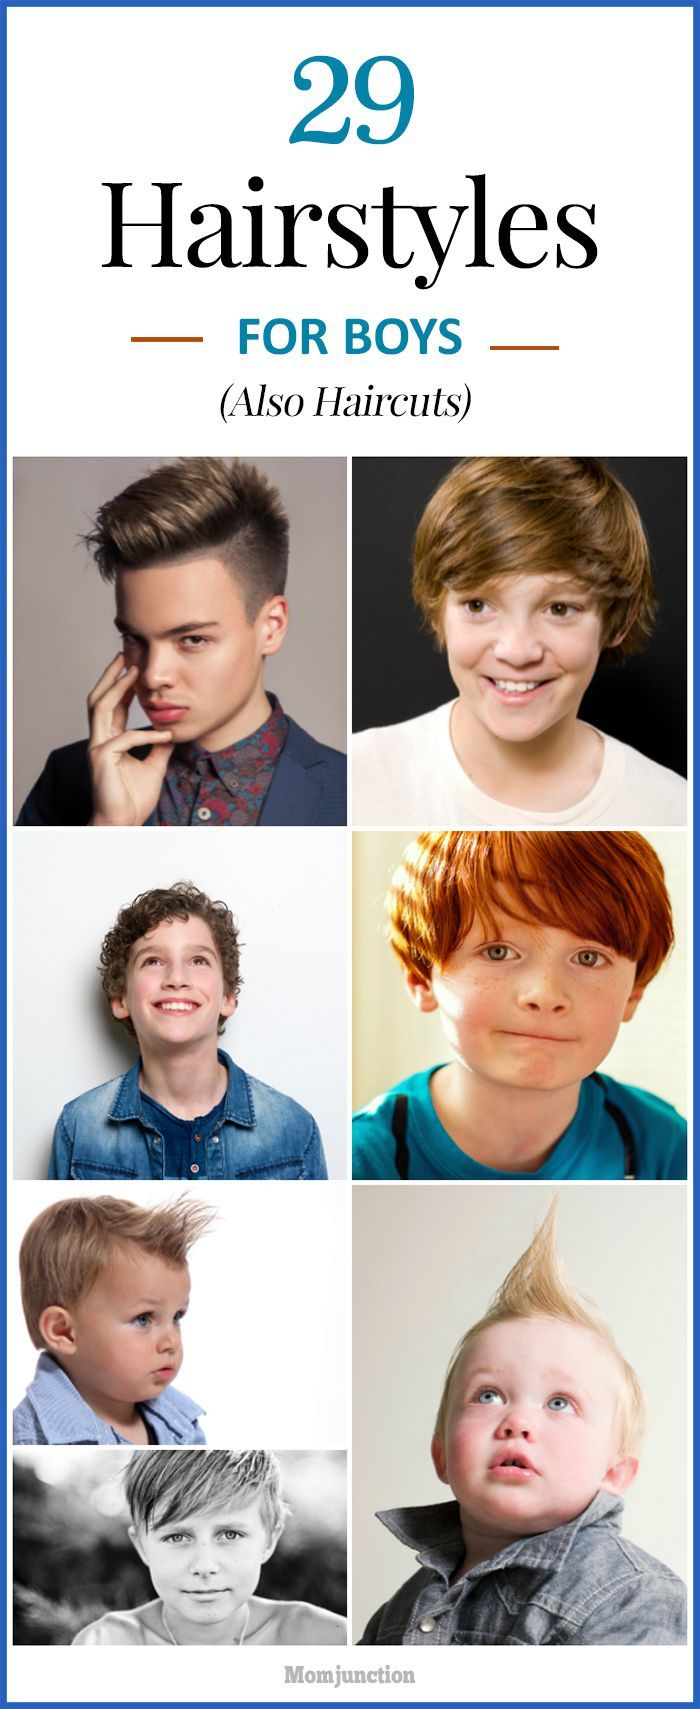 31 cool and best hairstyles & haircuts for boys | kiddos